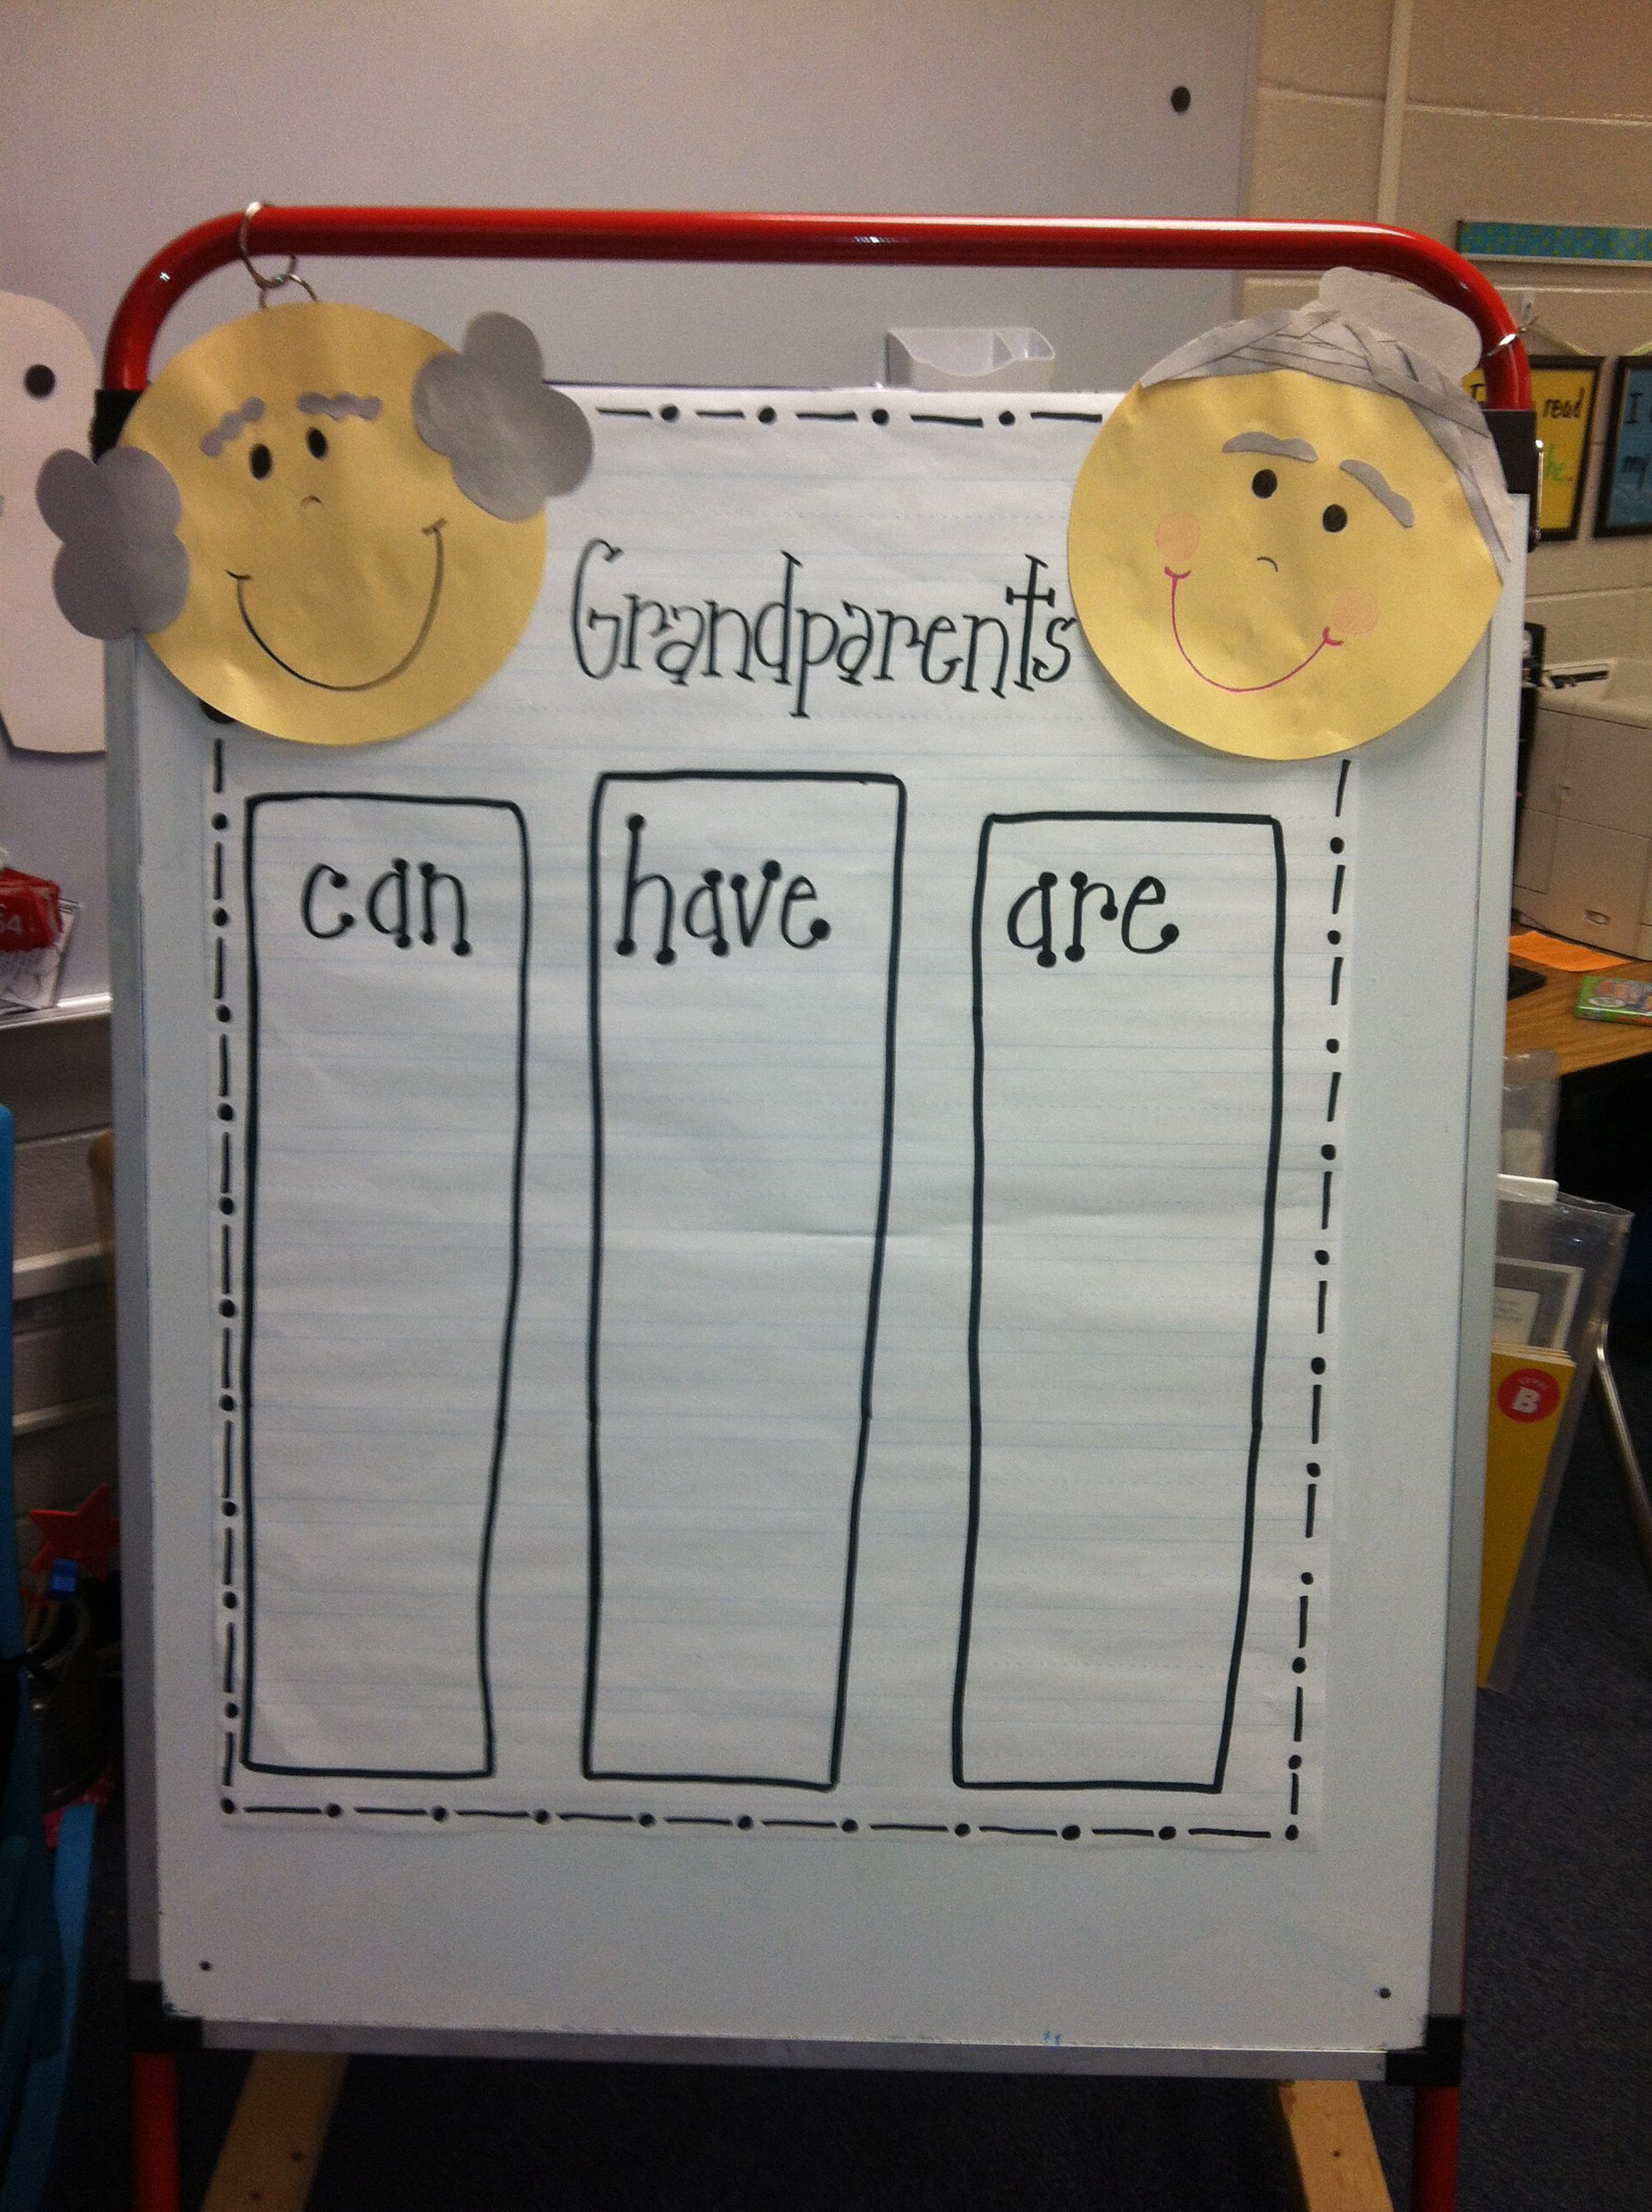 Grandparent's Day activity...one of my favorite celebrations for our kiddos...I want to do this!!! #grandparentsdaycrafts Grandparent's Day activity...one of my favorite celebrations for our kiddos...I want to do this!!! #grandparentsdaycrafts